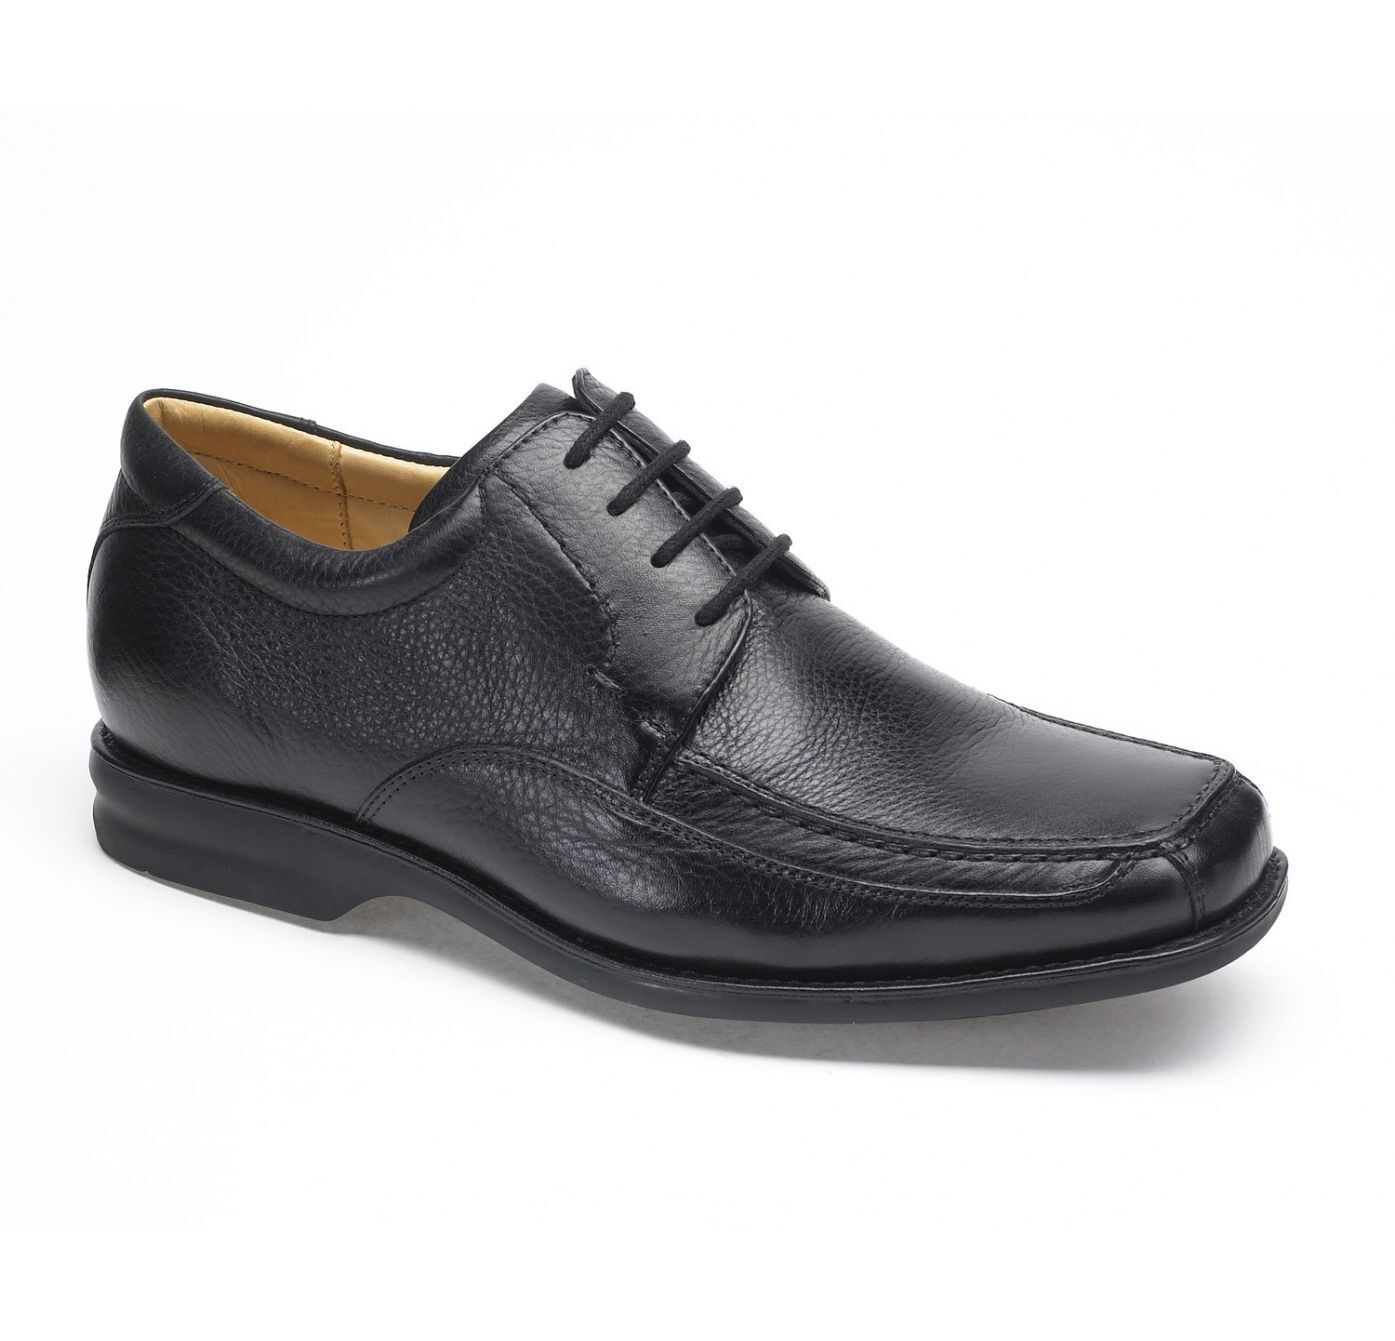 Anatomic & Co Goias Soft schwarz Leder lace ups Wide Fitting Schuhes rrp £129.95